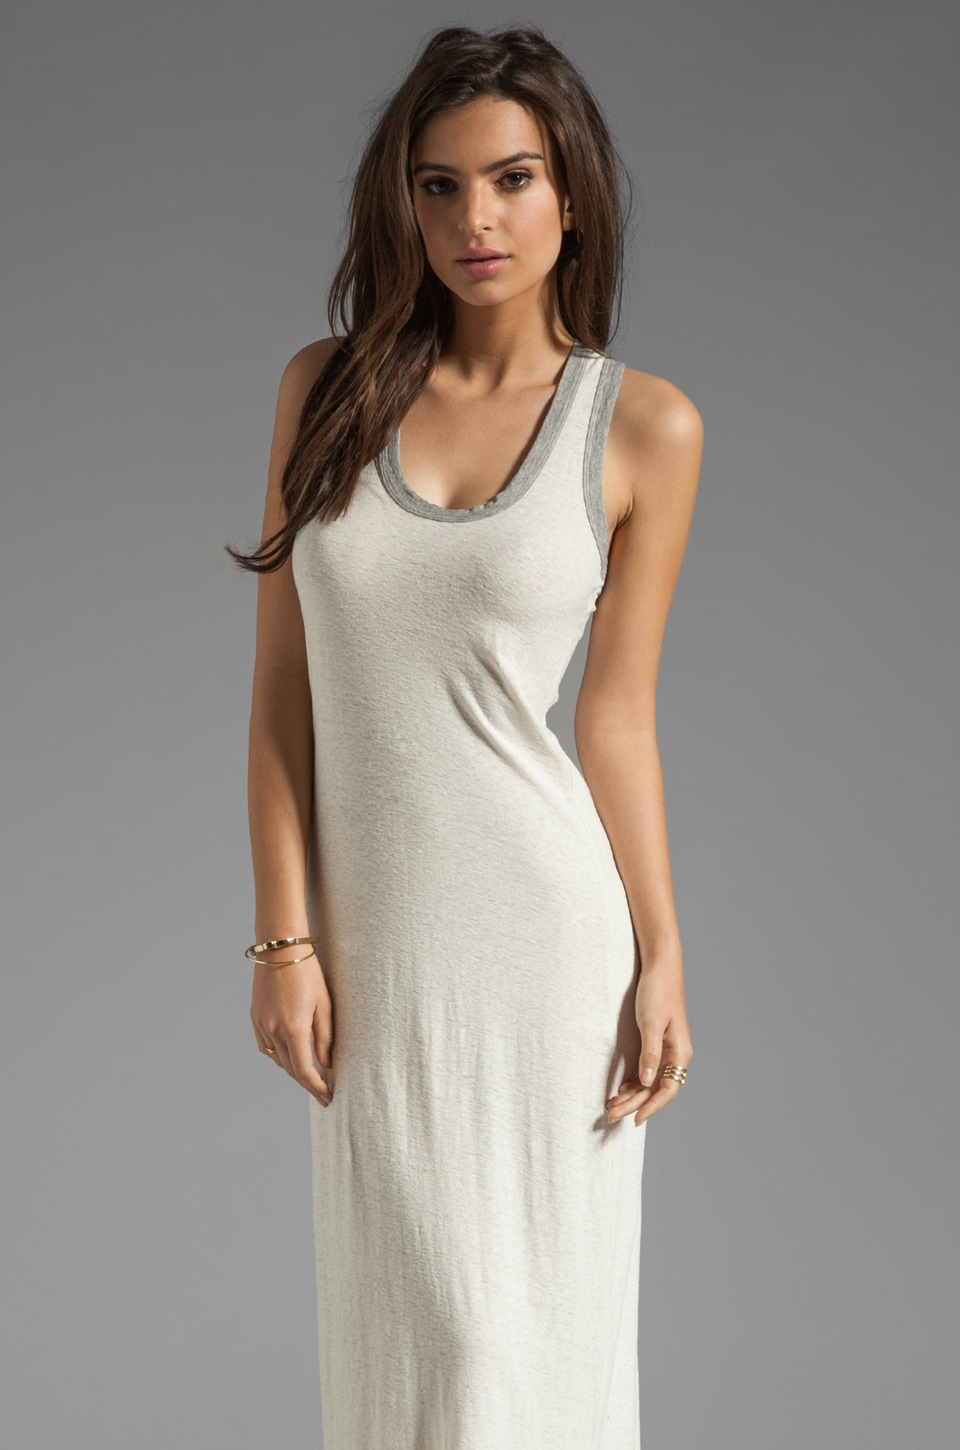 James Perse Contrast Maxi Dress in Stone